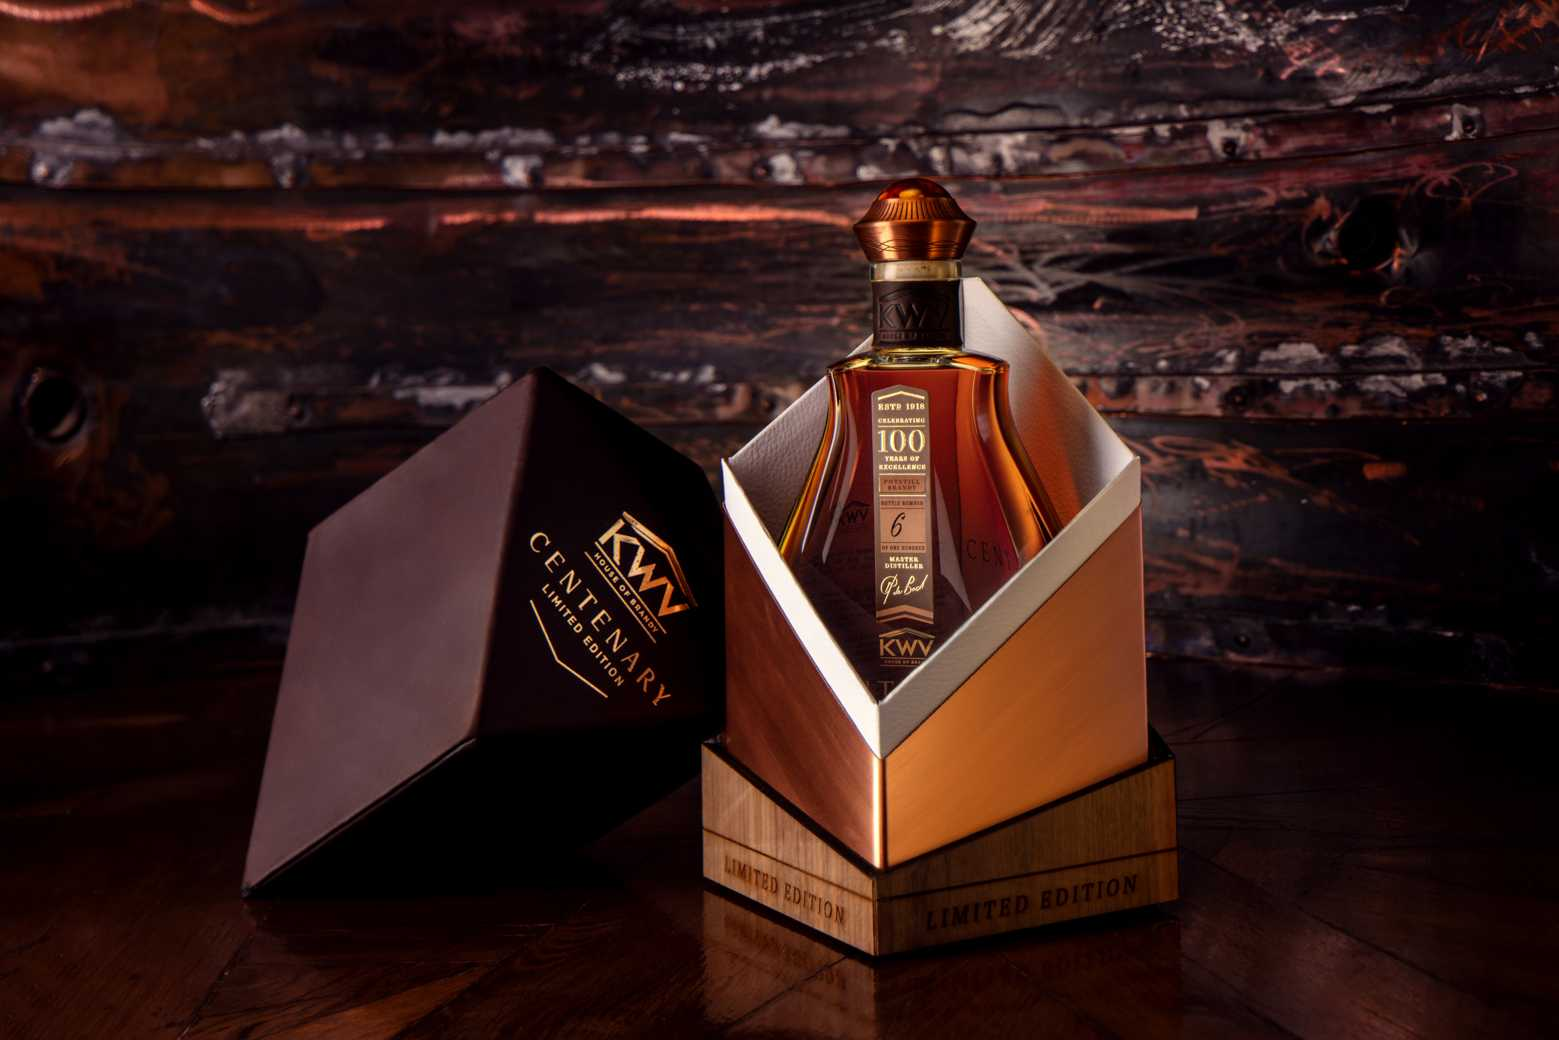 Lifestyle: KWV launches SA's most exclusive brandy